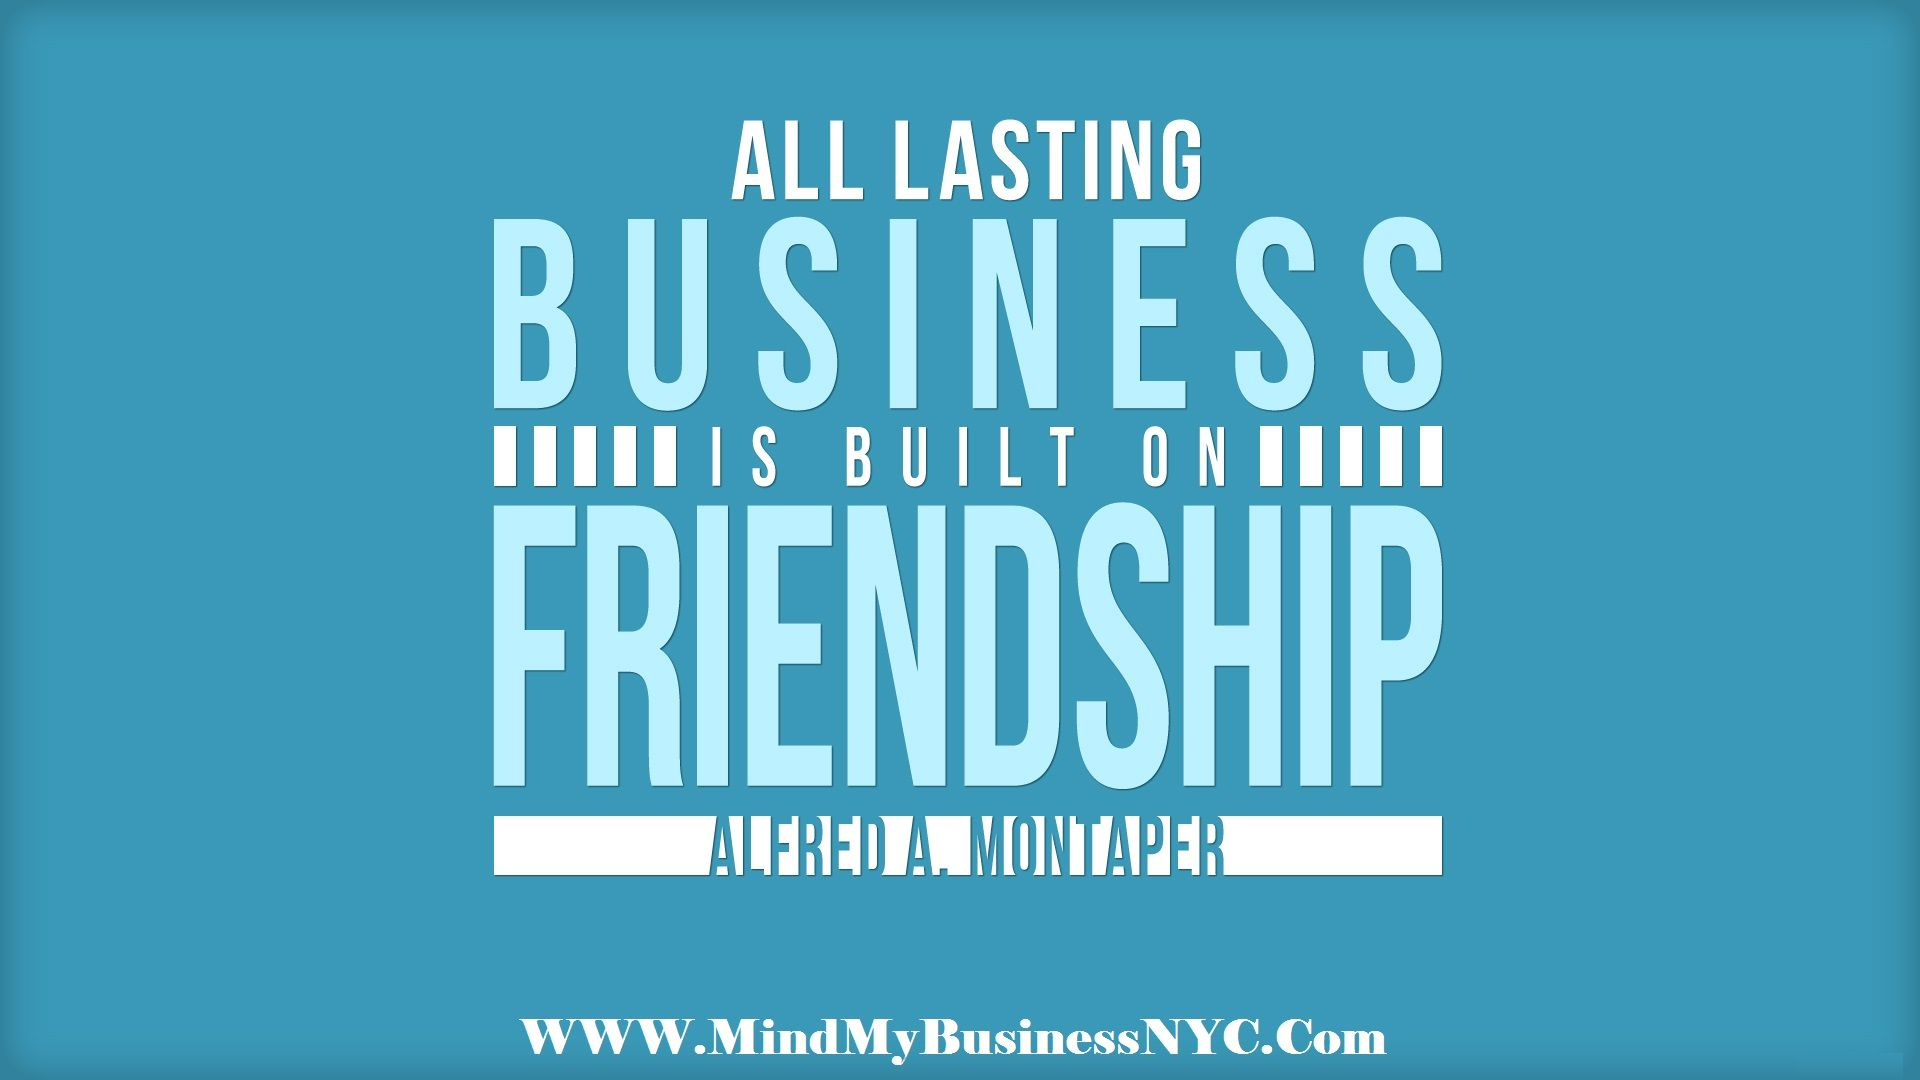 All lasting business is built on friendship. (Alfred A